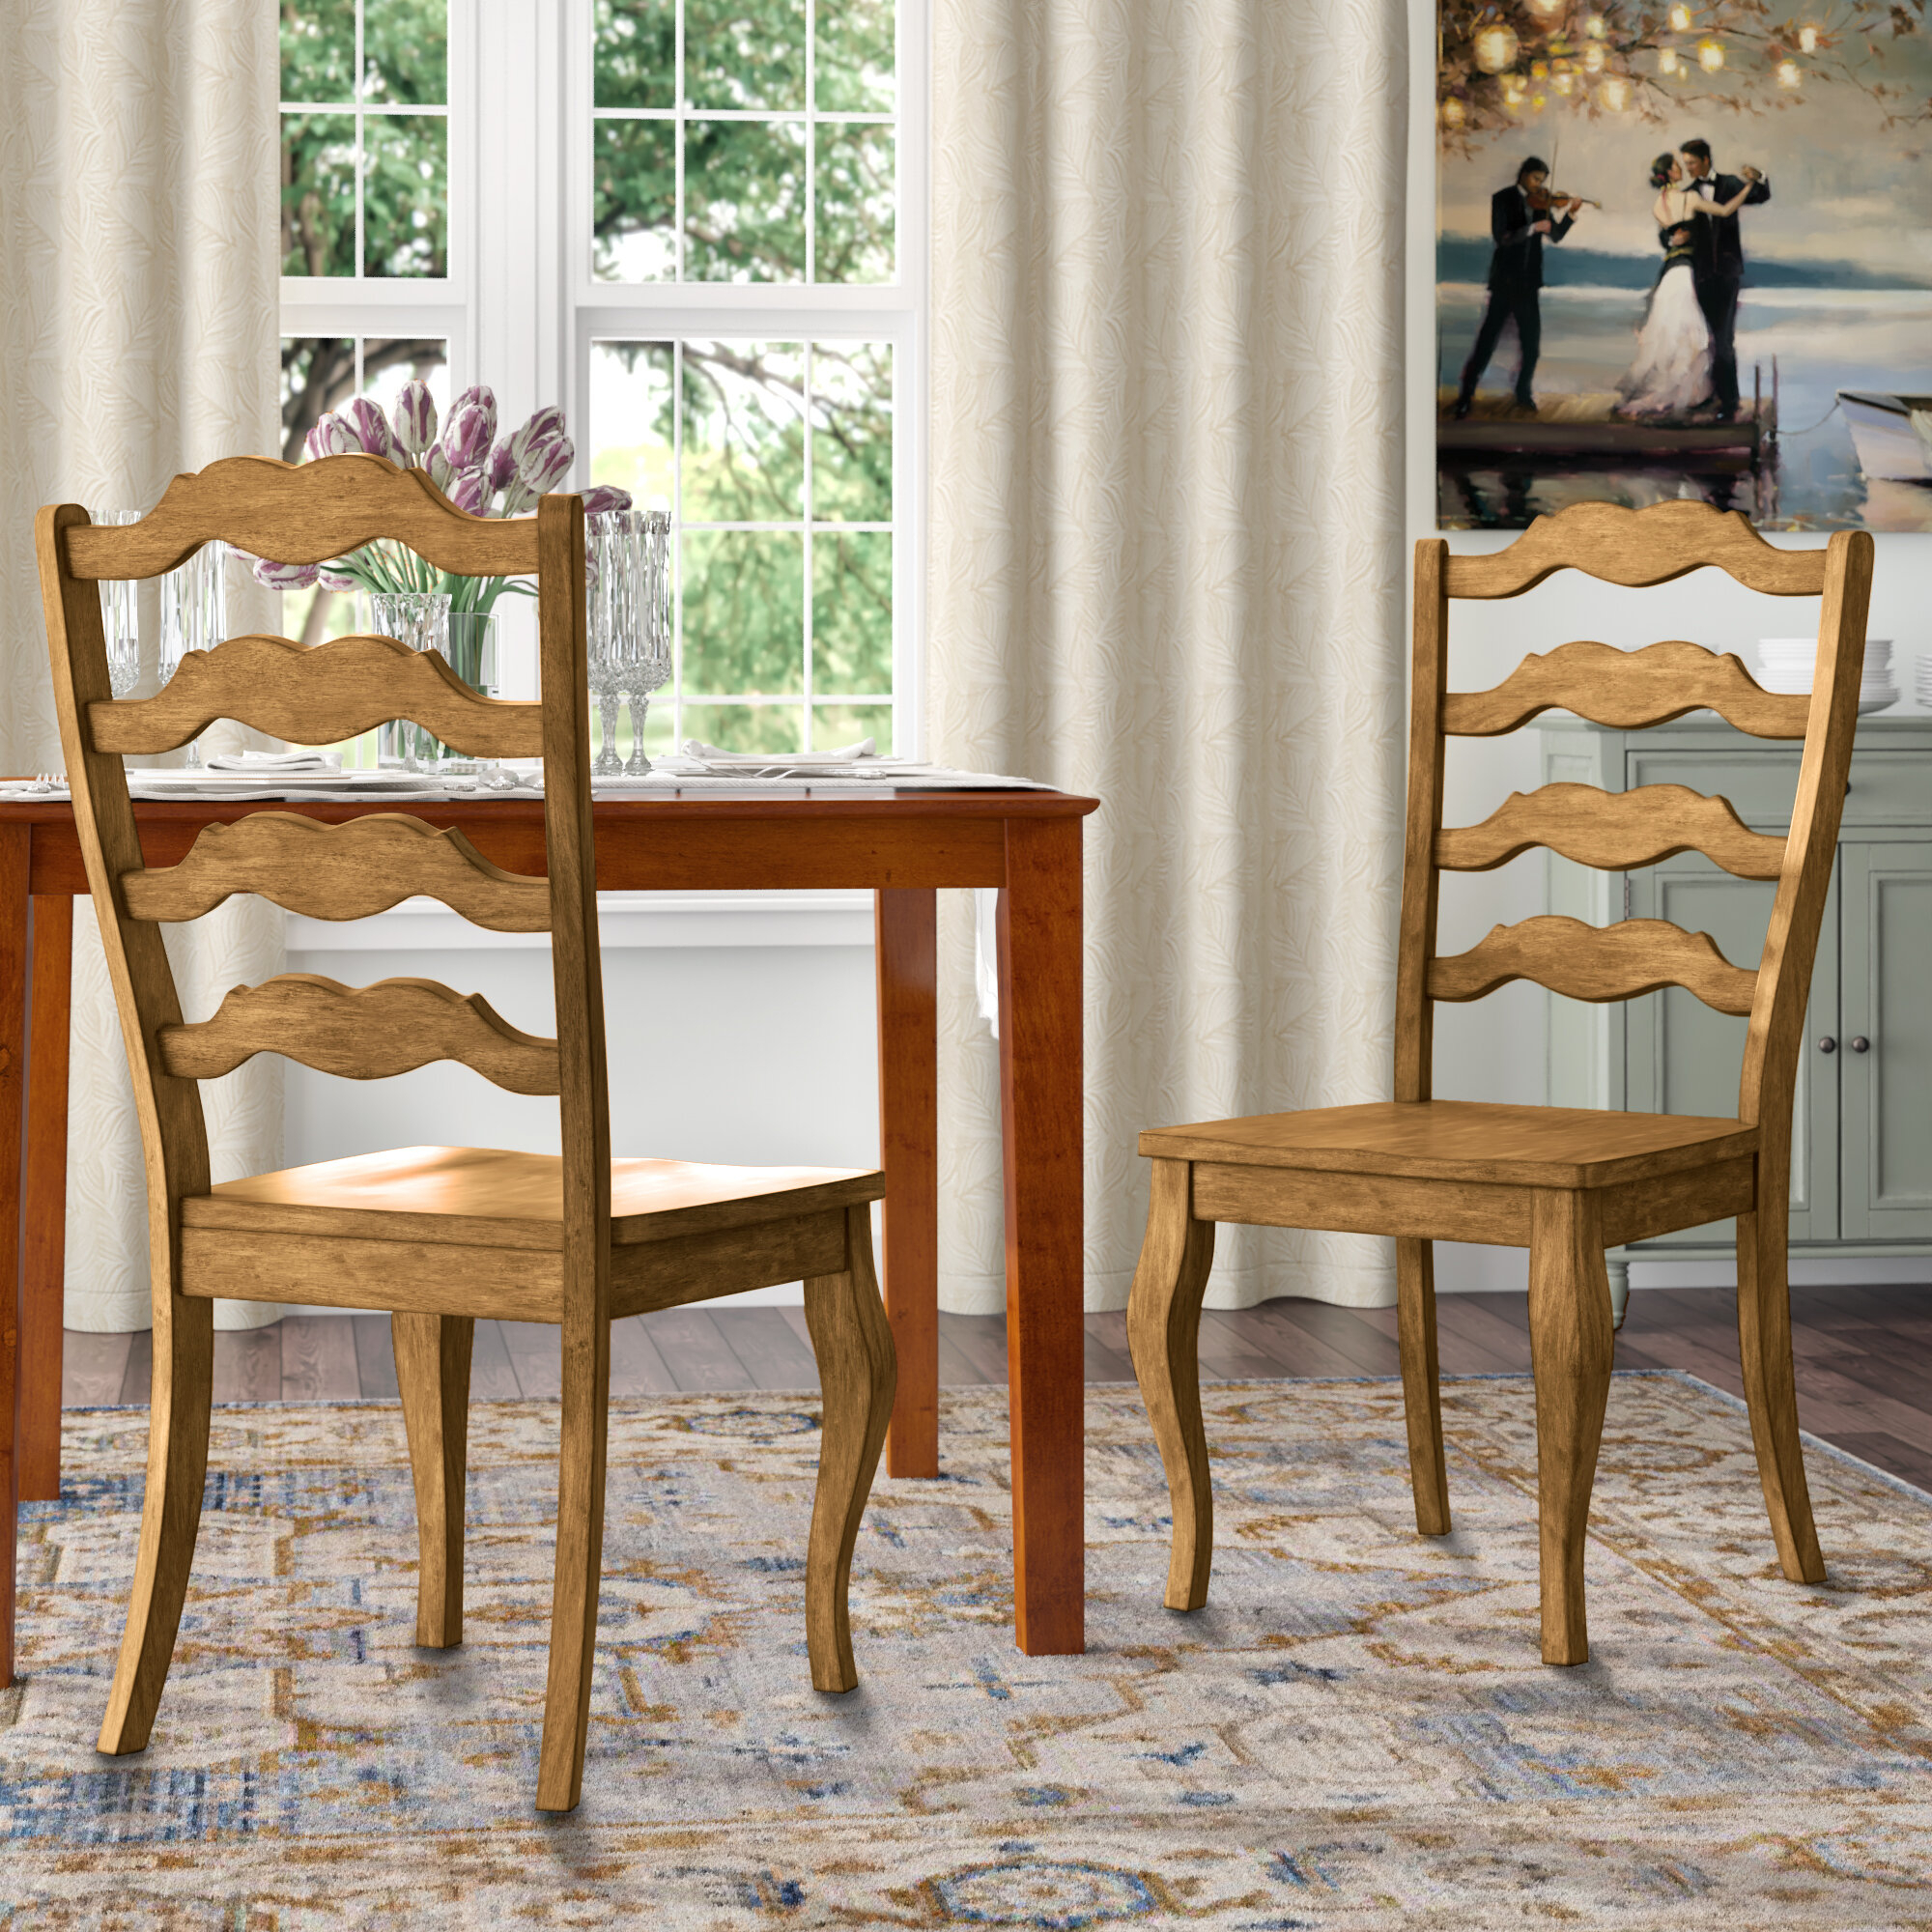 Mayfair Side Chair | Wayfair With Regard To Carbon Loft Ariel Rocking Chairs In Espresso Pu And Walnut (View 13 of 20)